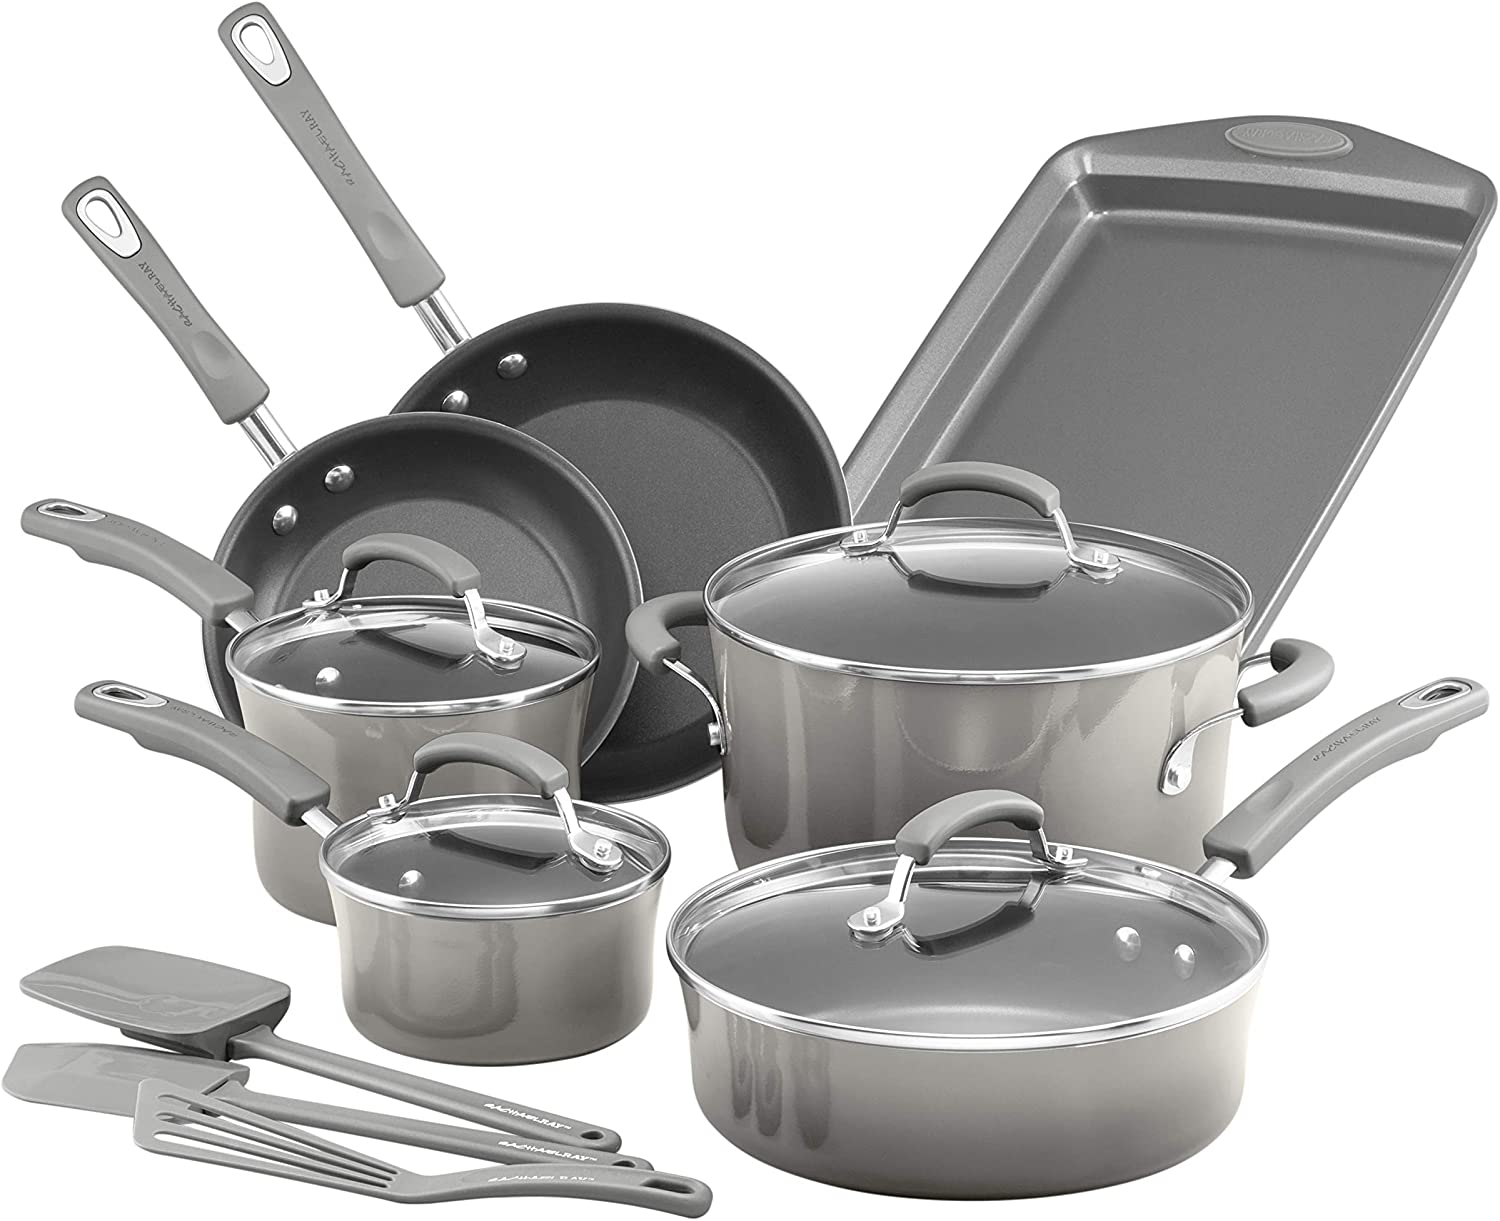 Rachael Ray 19019 Brights Nonstick Cookware Pots and Pans Set, 14 Piece, Sea Salt Gray